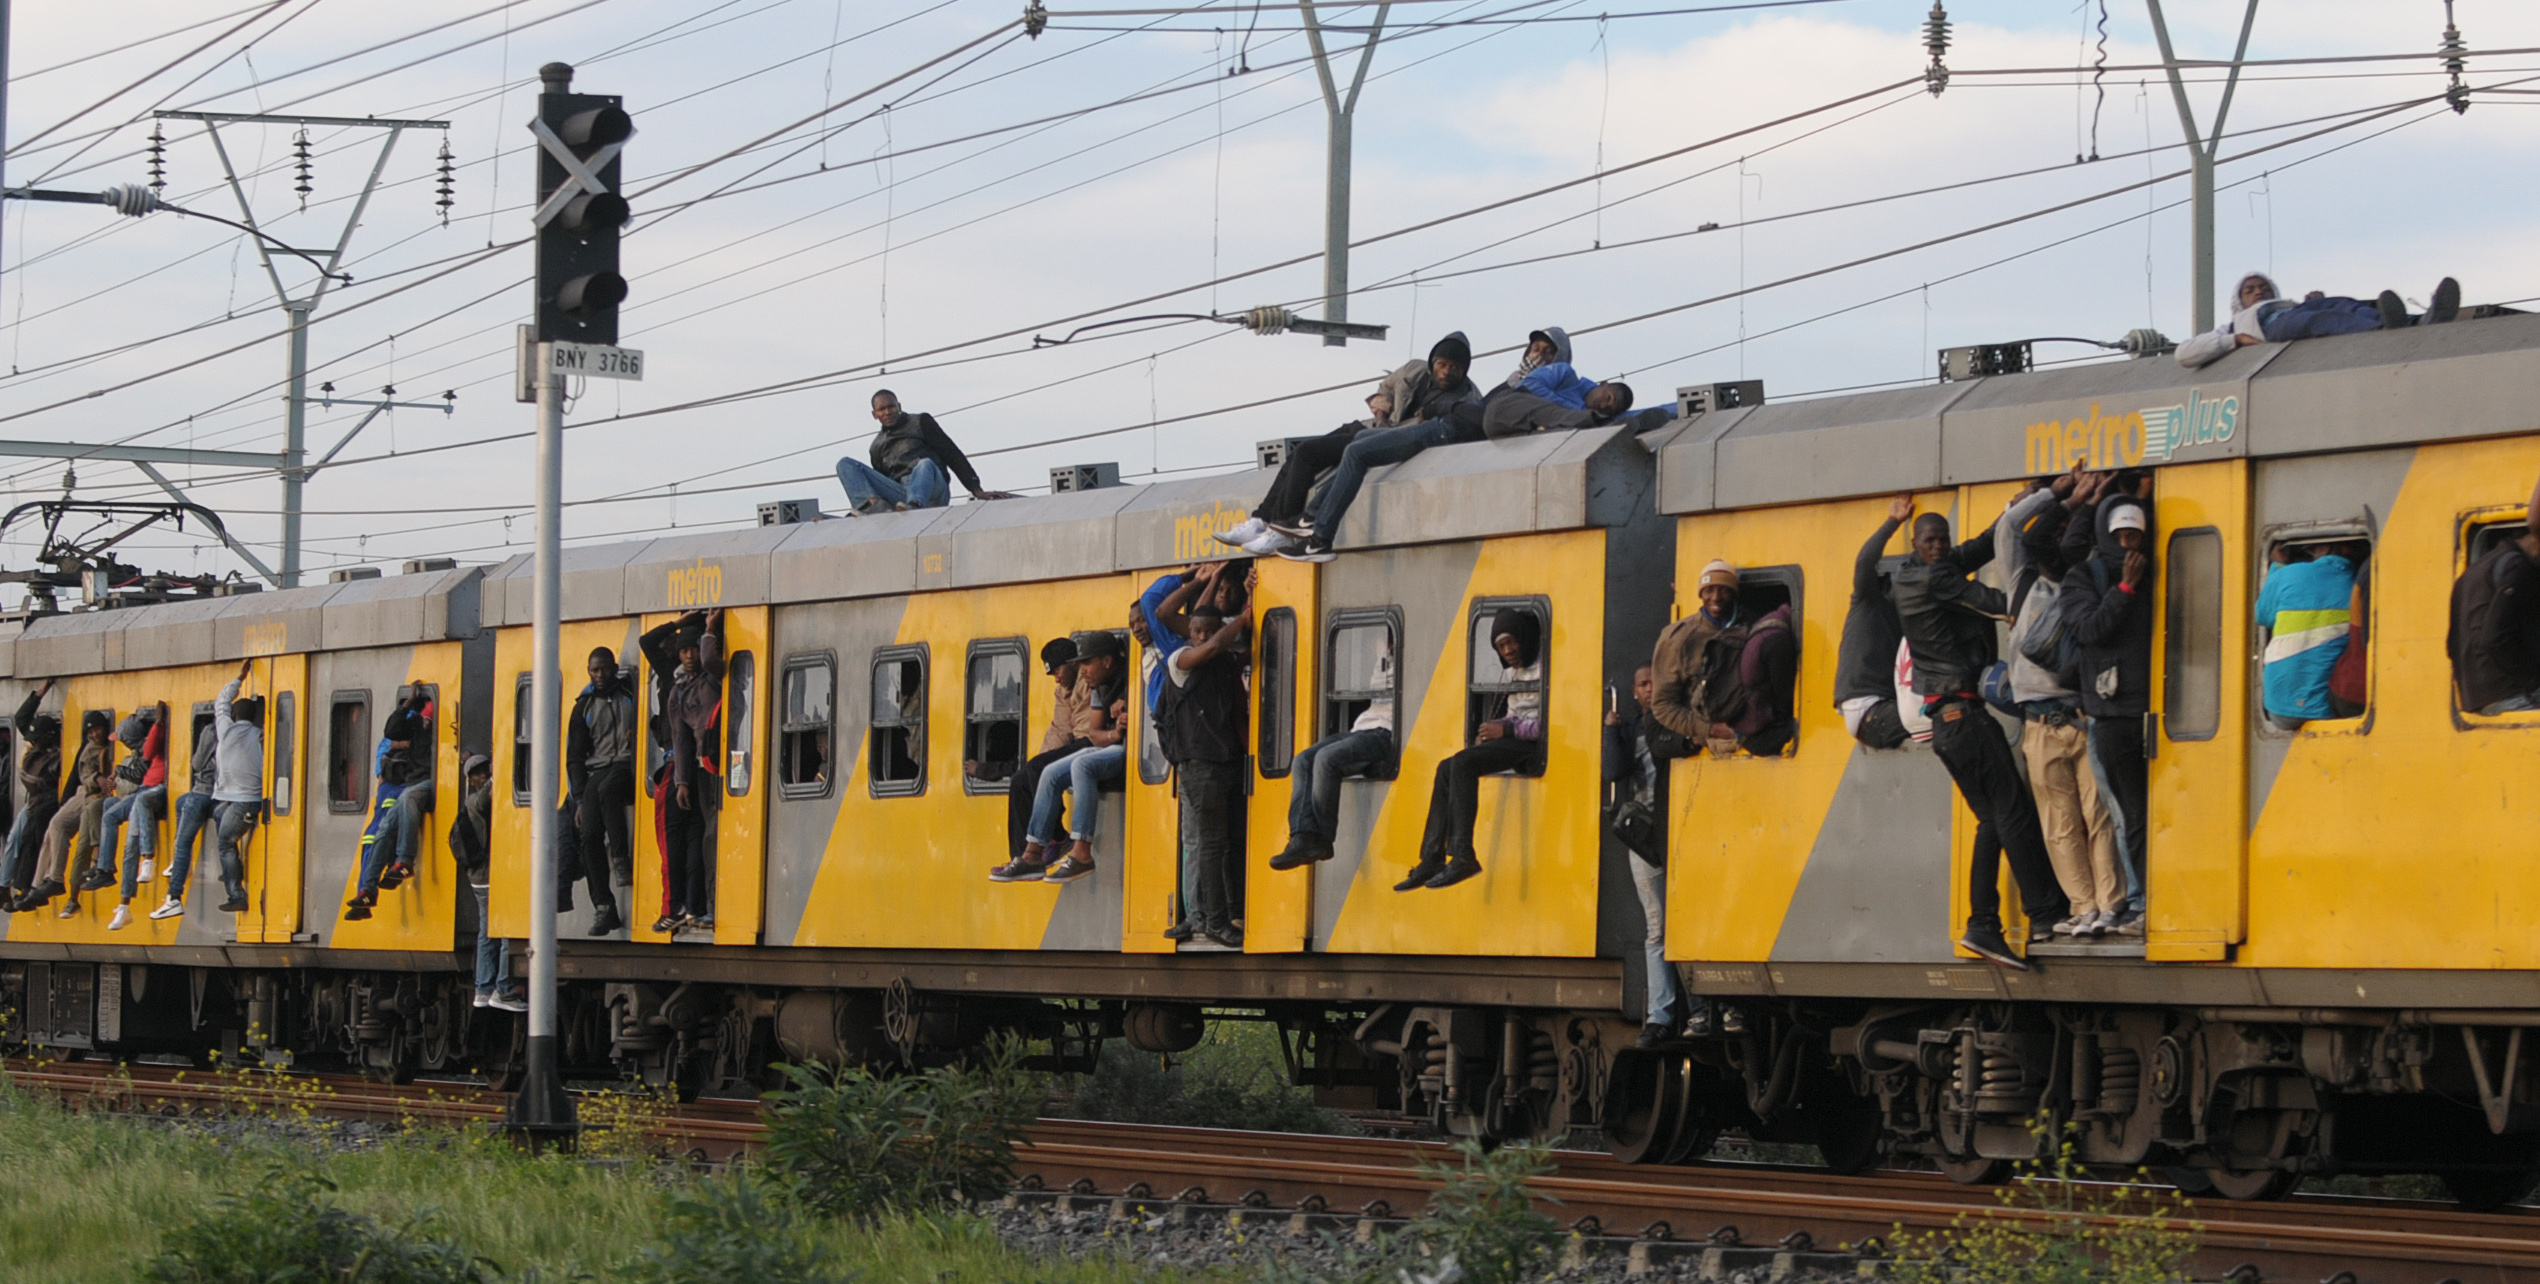 DA rail oversight highlights crisis in public railway system